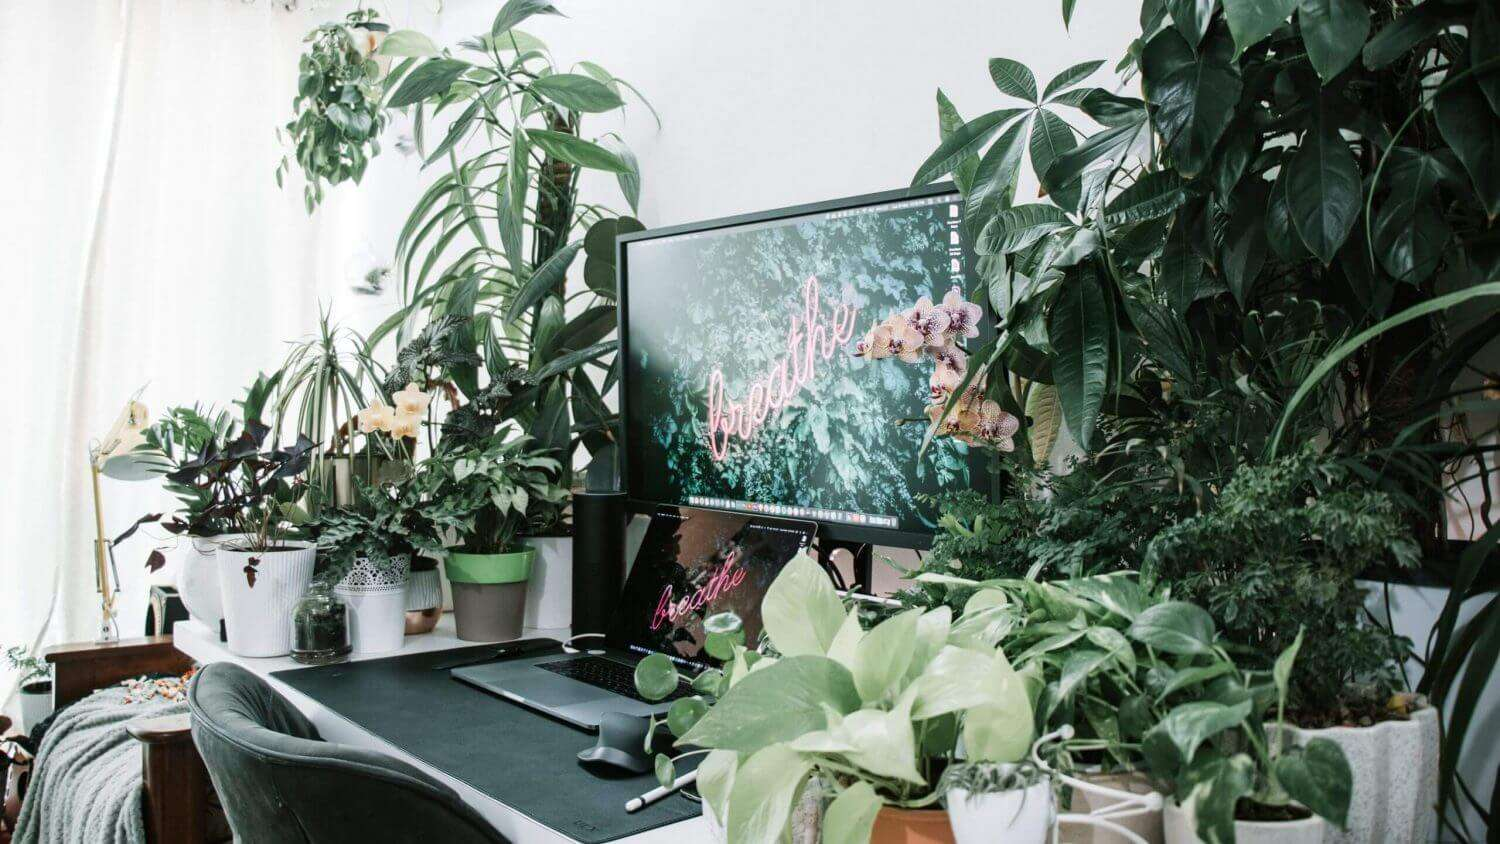 WFH Wellness: Staying Productive & Motivated While Working From Home